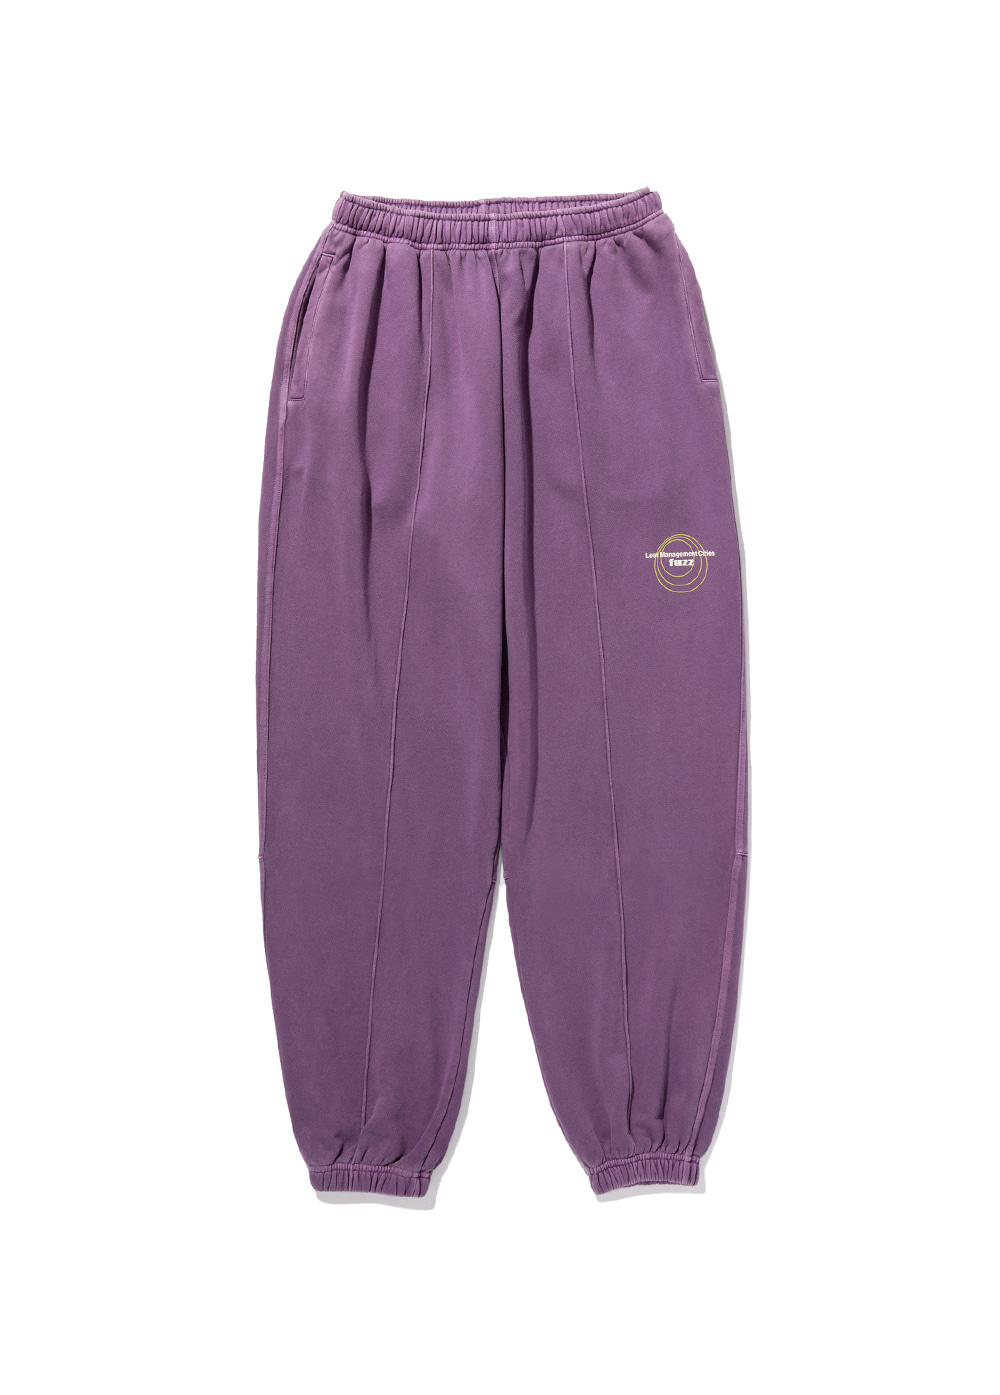 LMC x FUZZ CIRCLE SWEAT PANTS purple